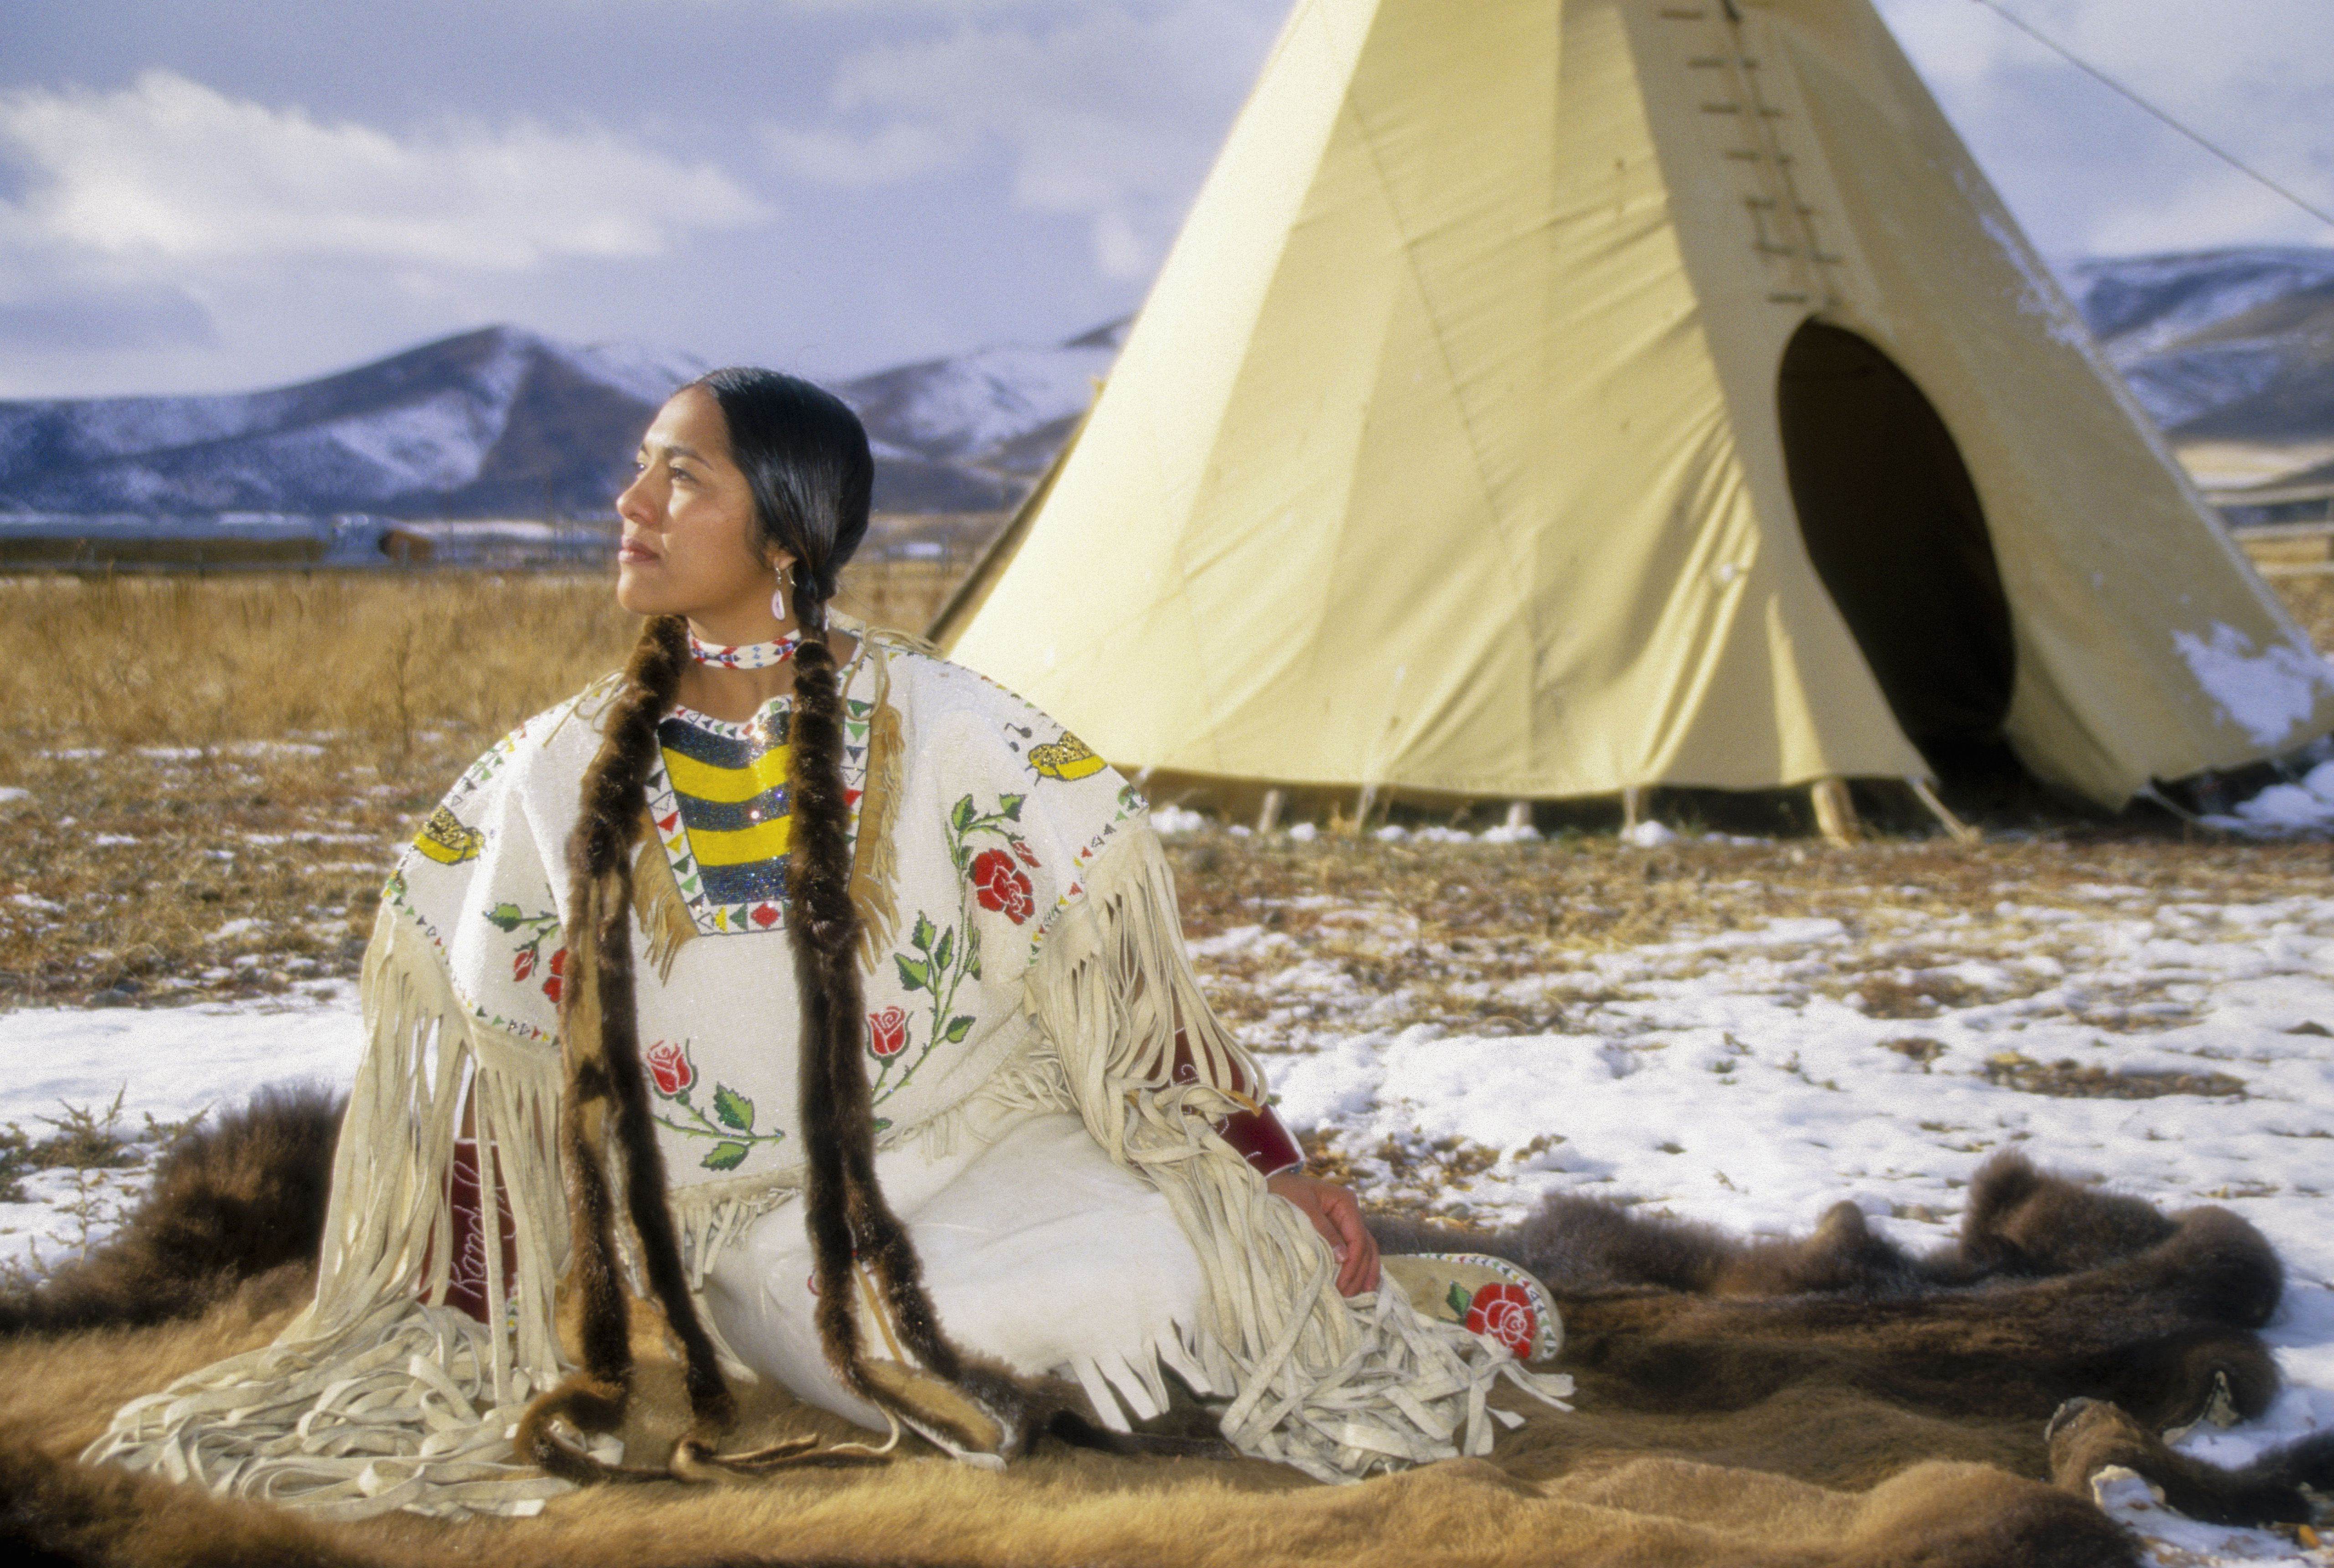 Shoshone-Cree woman dressed in beaded brain tanned clothing